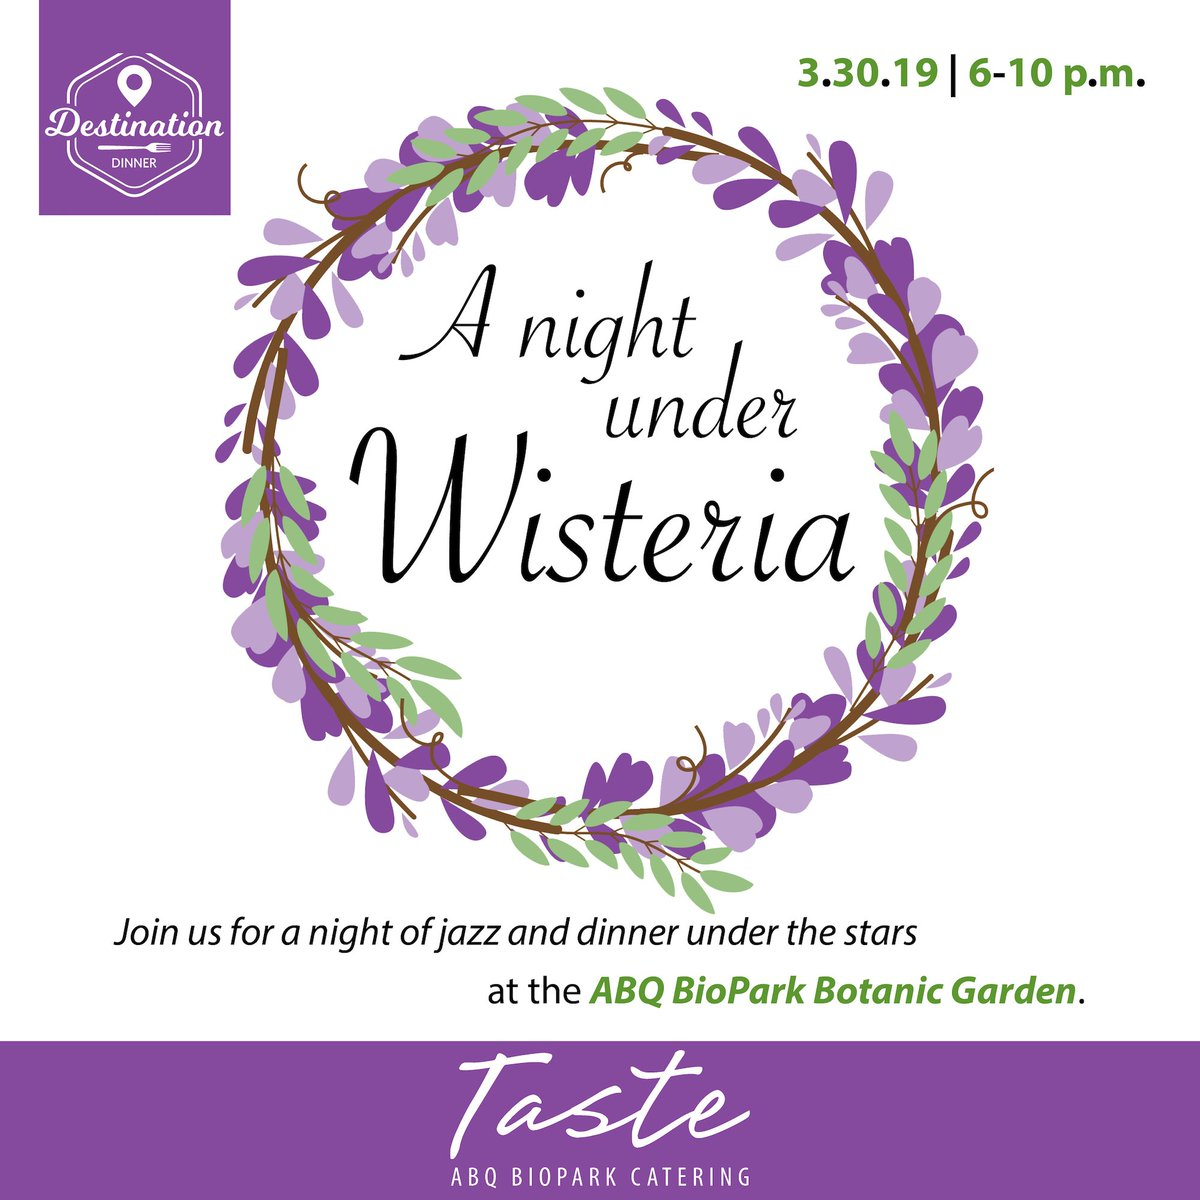 Calling all jazz cats! Join us for an evening of music and dinner under the stars with A Night Under Wisteria, a #DestinationDinner presented by Taste ABQ BioPark Catering on 3/30 6-10 p.m. Space is limited, so RSVP now: http://bit.ly/2Dm1RJ7 #ABQBioPark #BotanicGarden